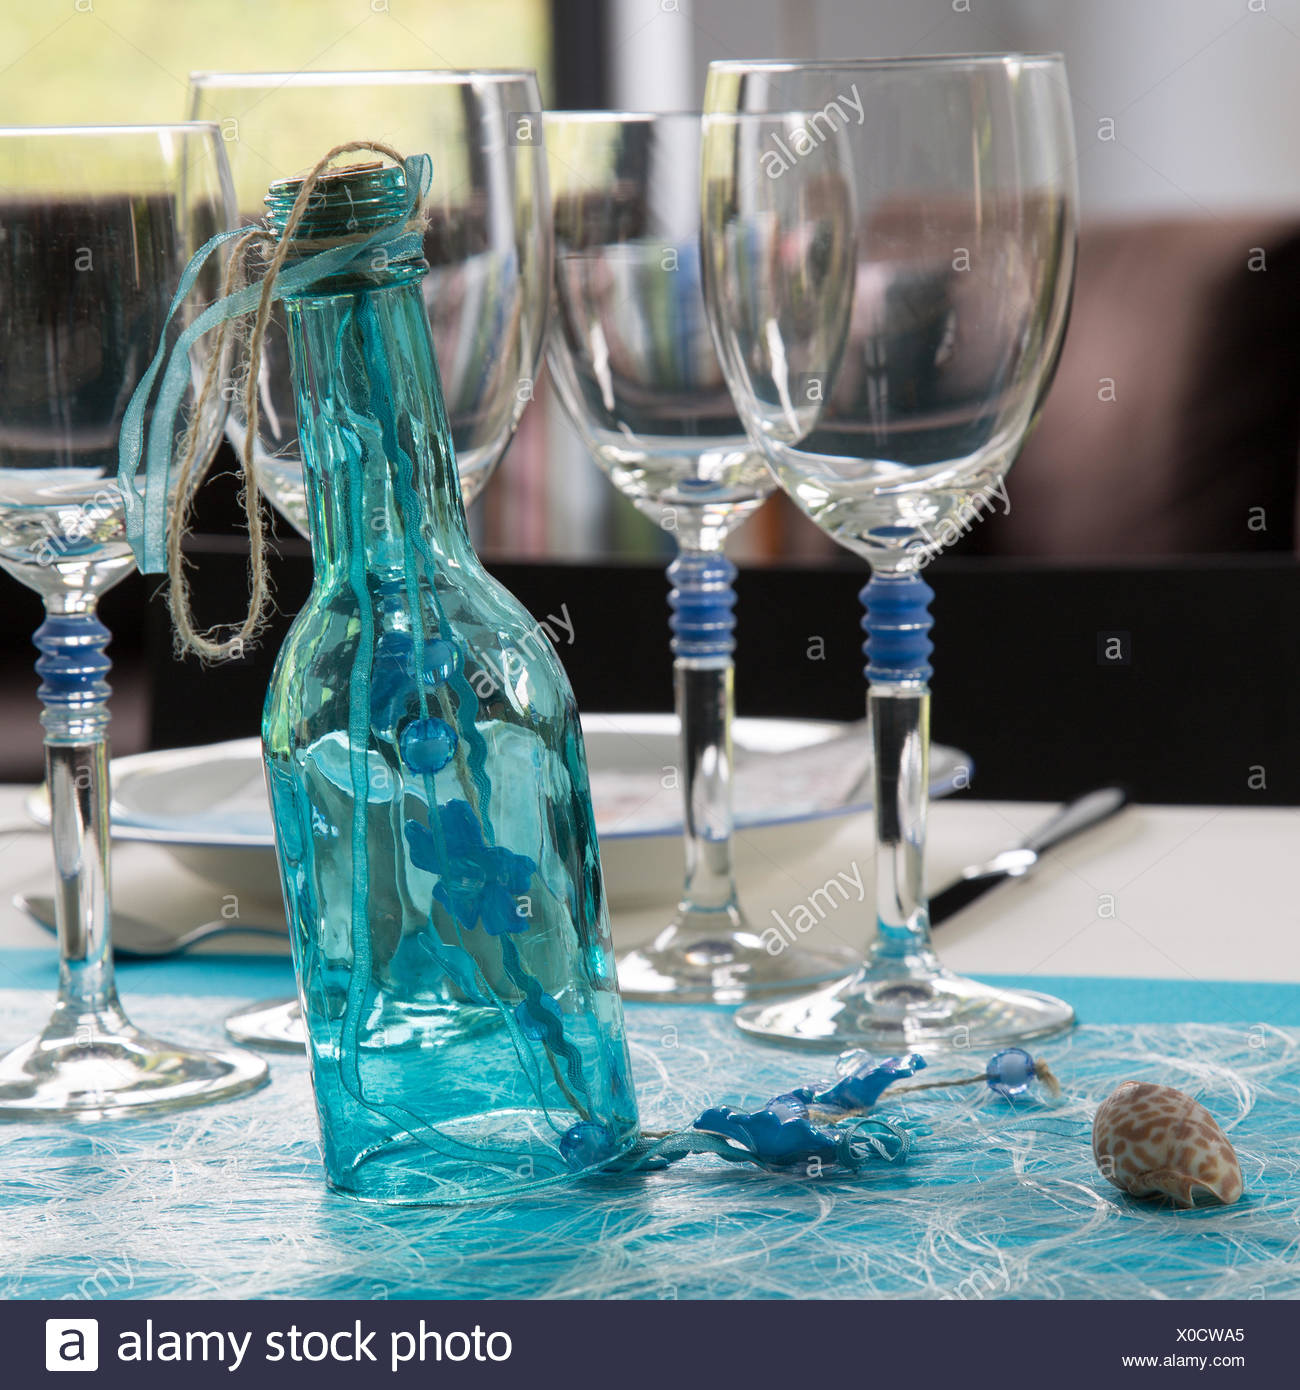 Blue table arrangement - Stock Image